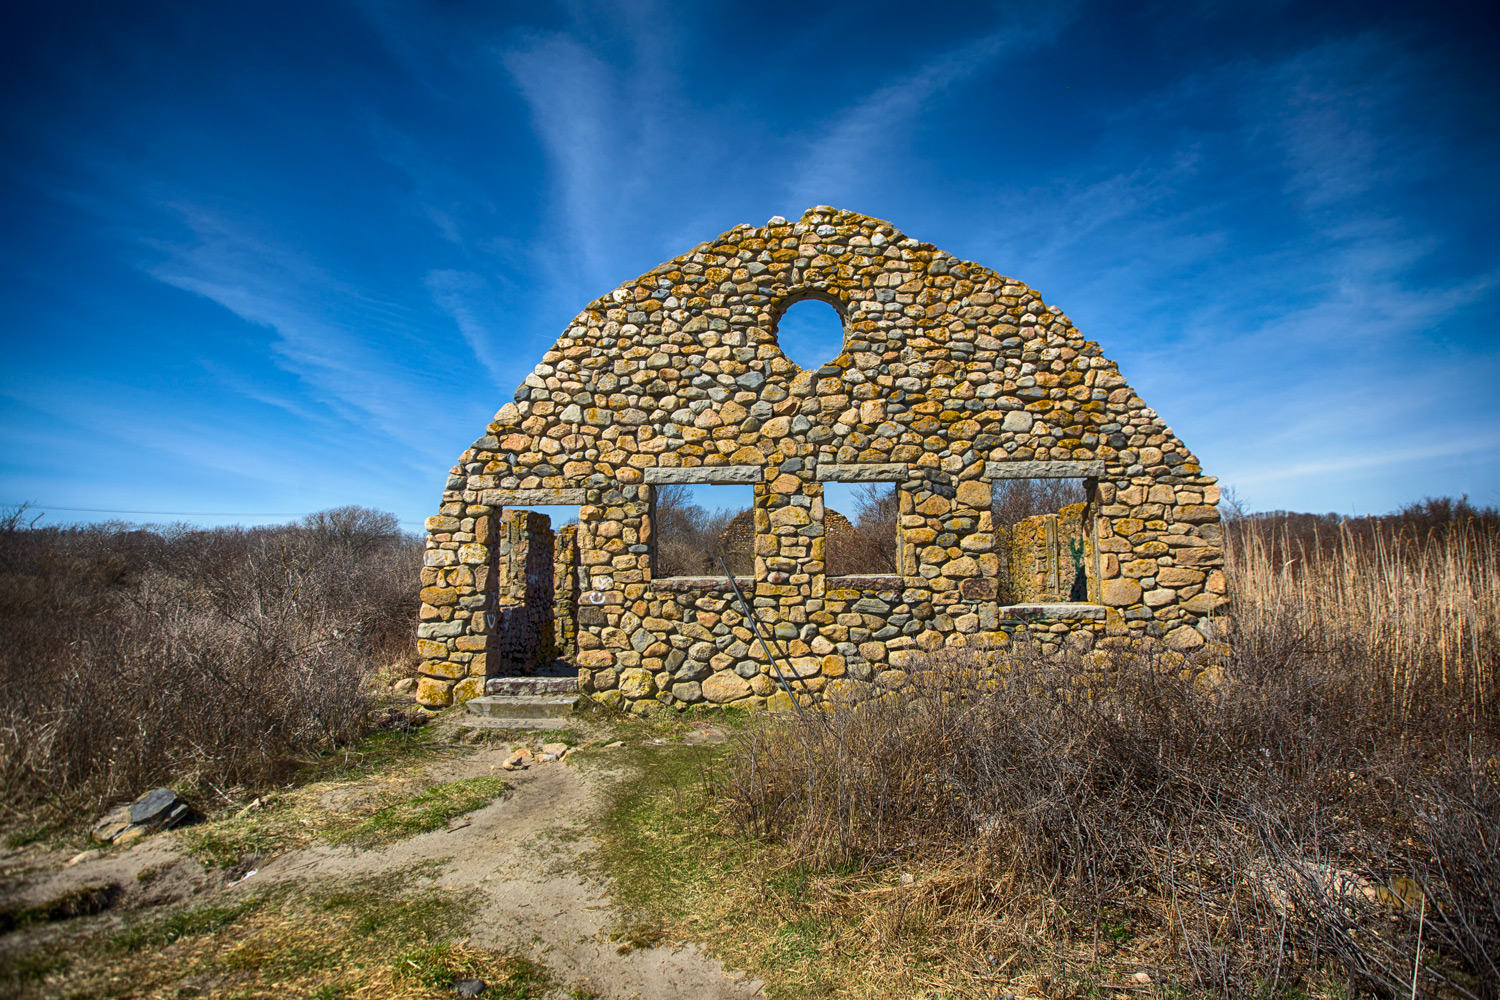 building ruins - Using HDR Photography to Your Advantage